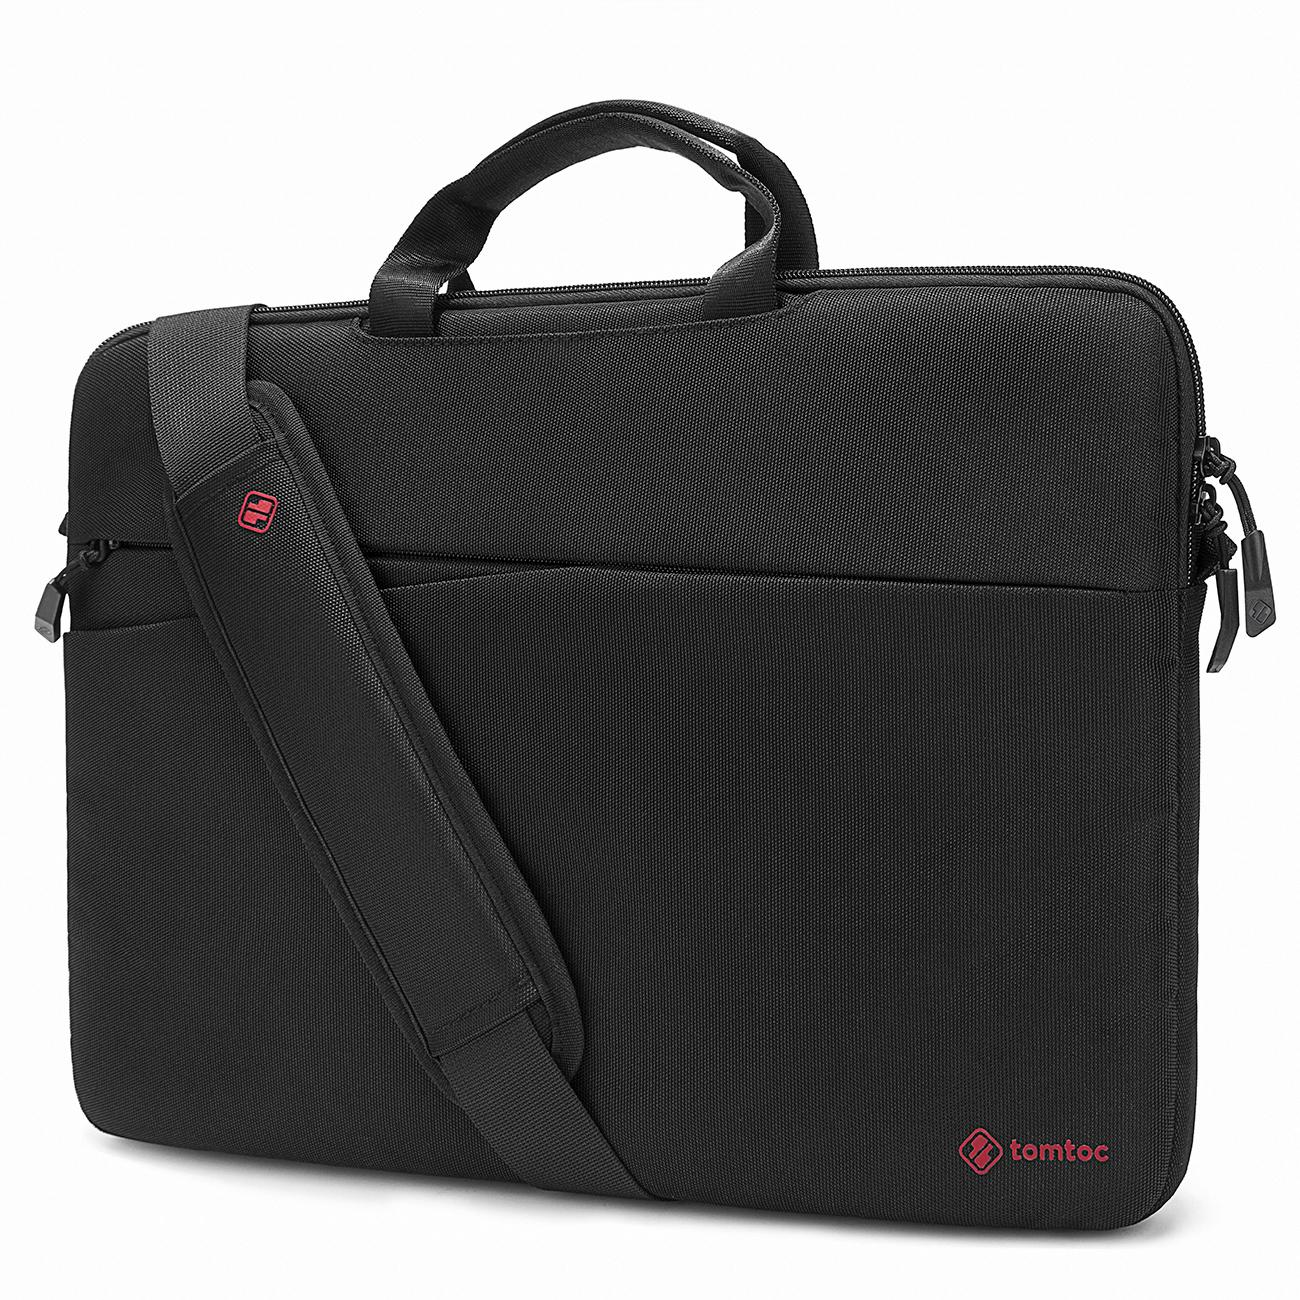 e67f9c4f8 349739 items found in Travel. tomtoc A45 13-13.5 Inch Laptop Shoulder Bag  Fit for 13.3 inch MacBook Air